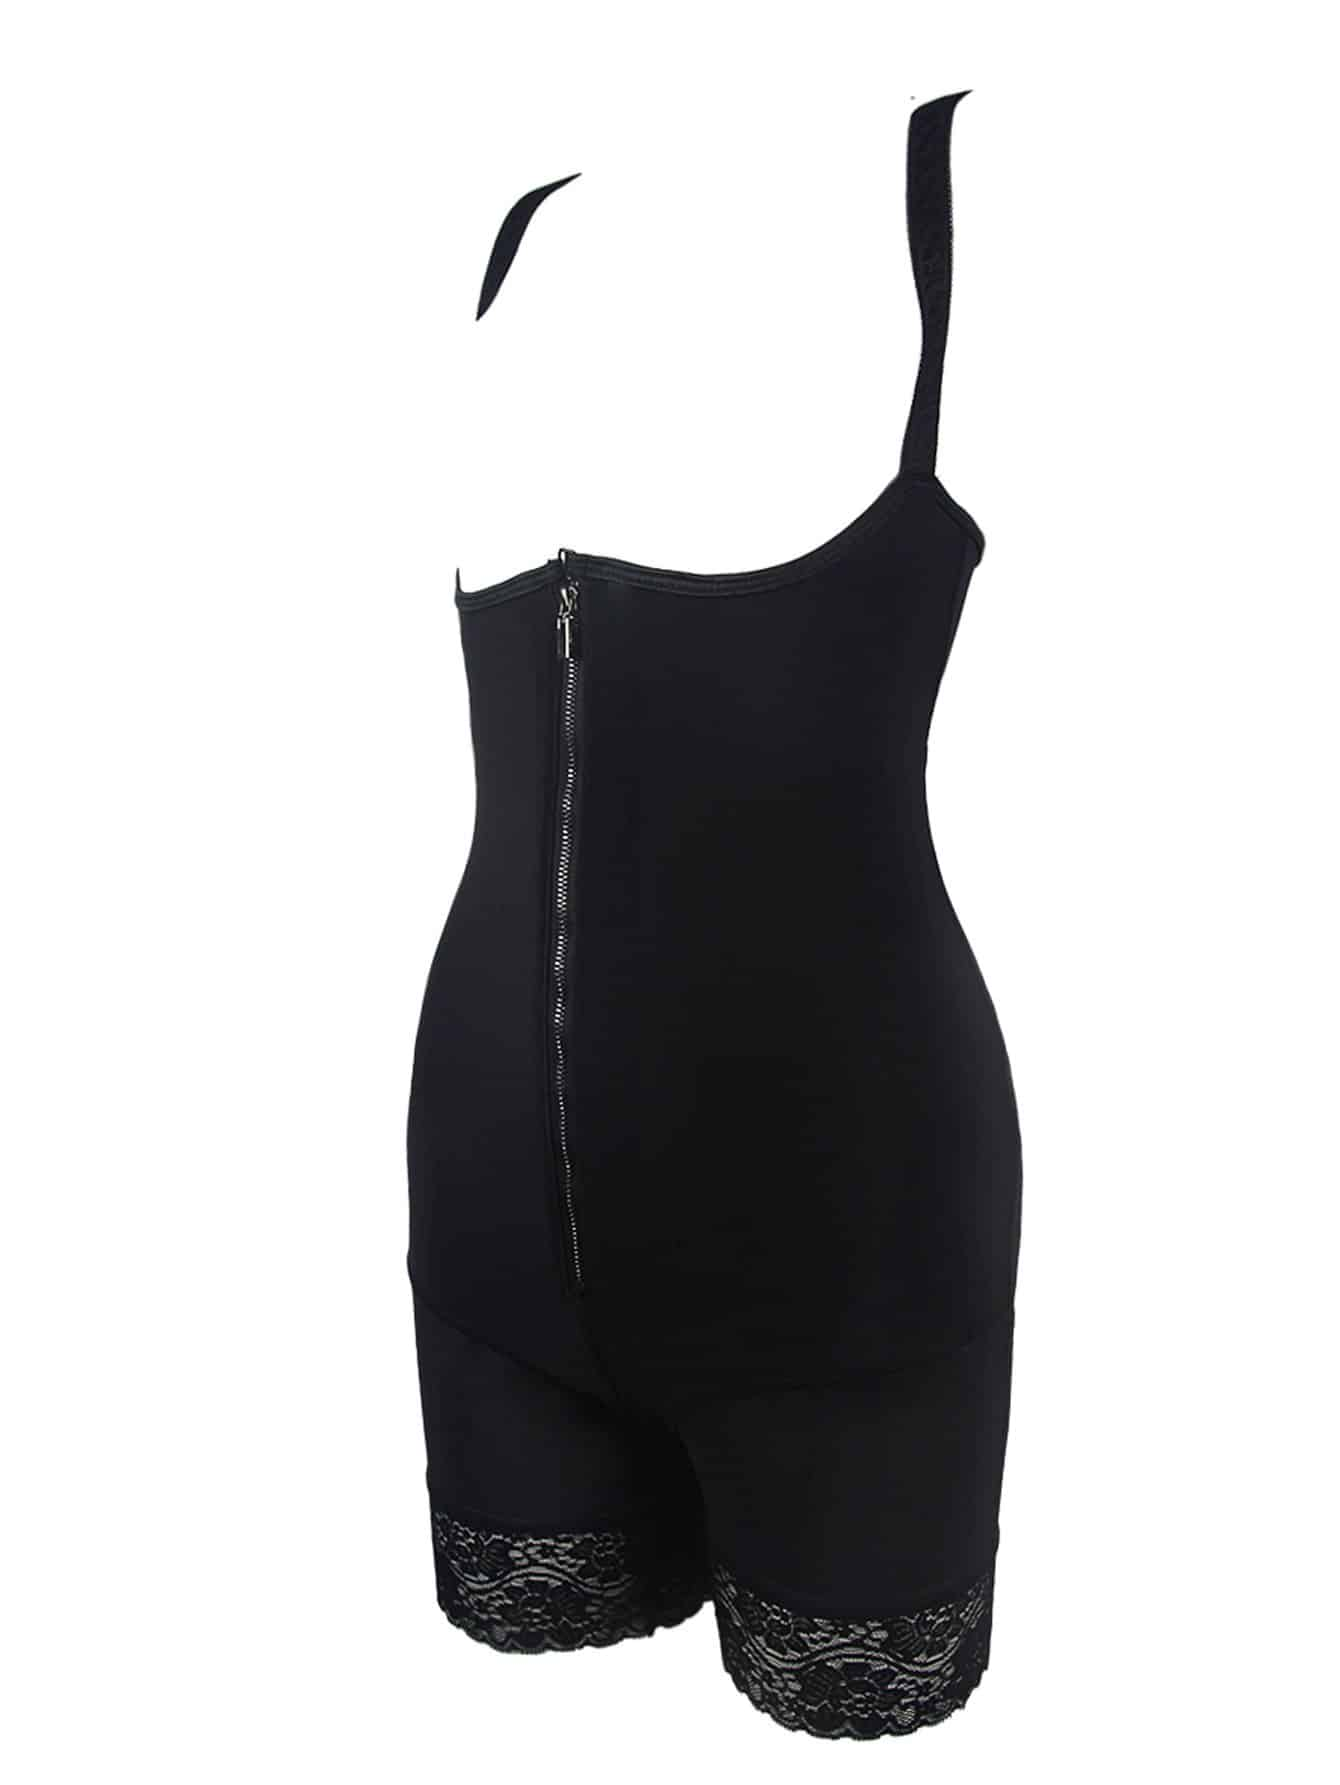 Plus Zip Front Body Sculpting Underwear - FLJ CORPORATIONS